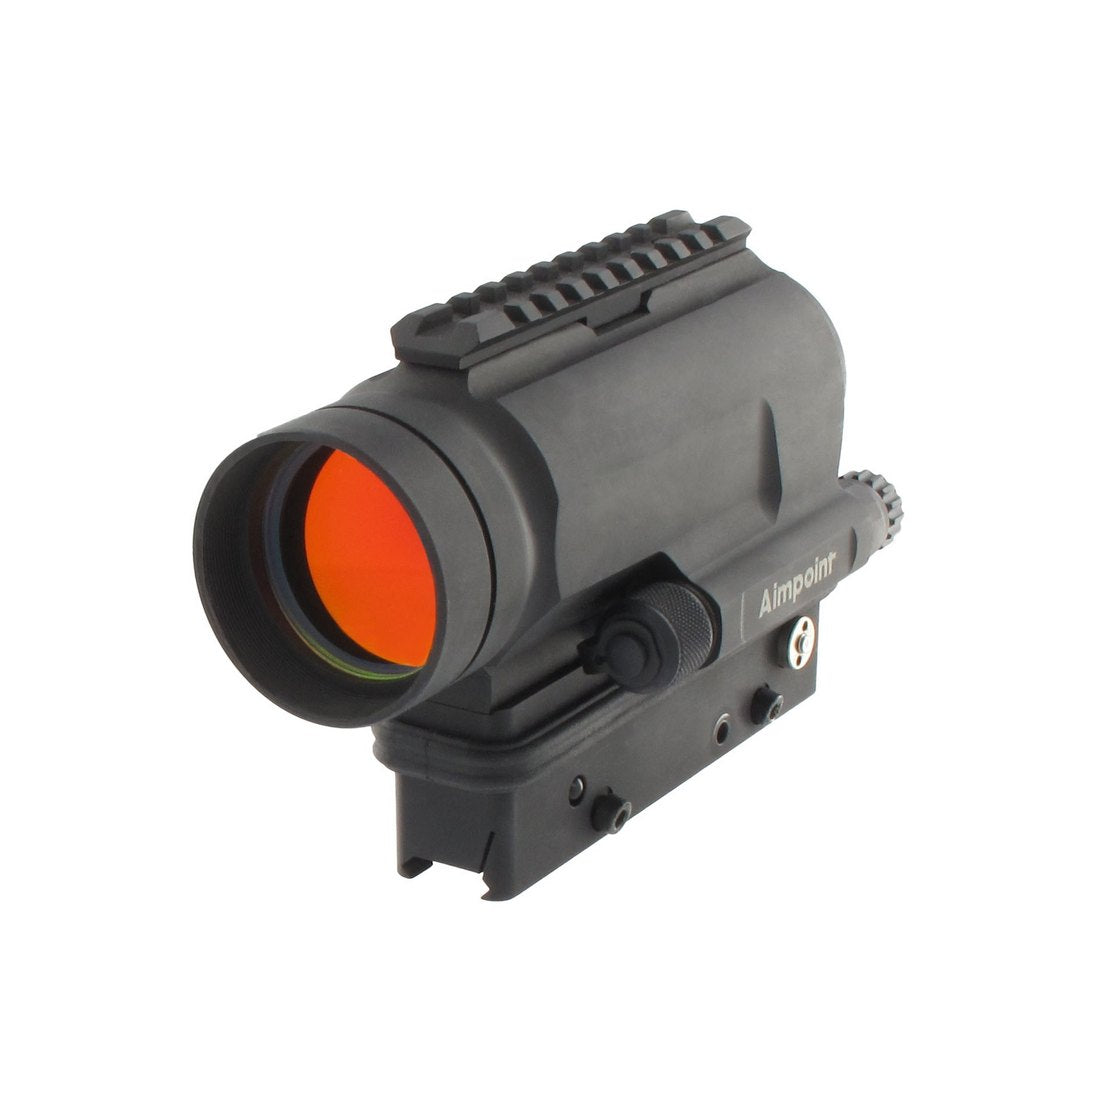 Aimpoint 11704 MPS3 Sight - Security Pro USA